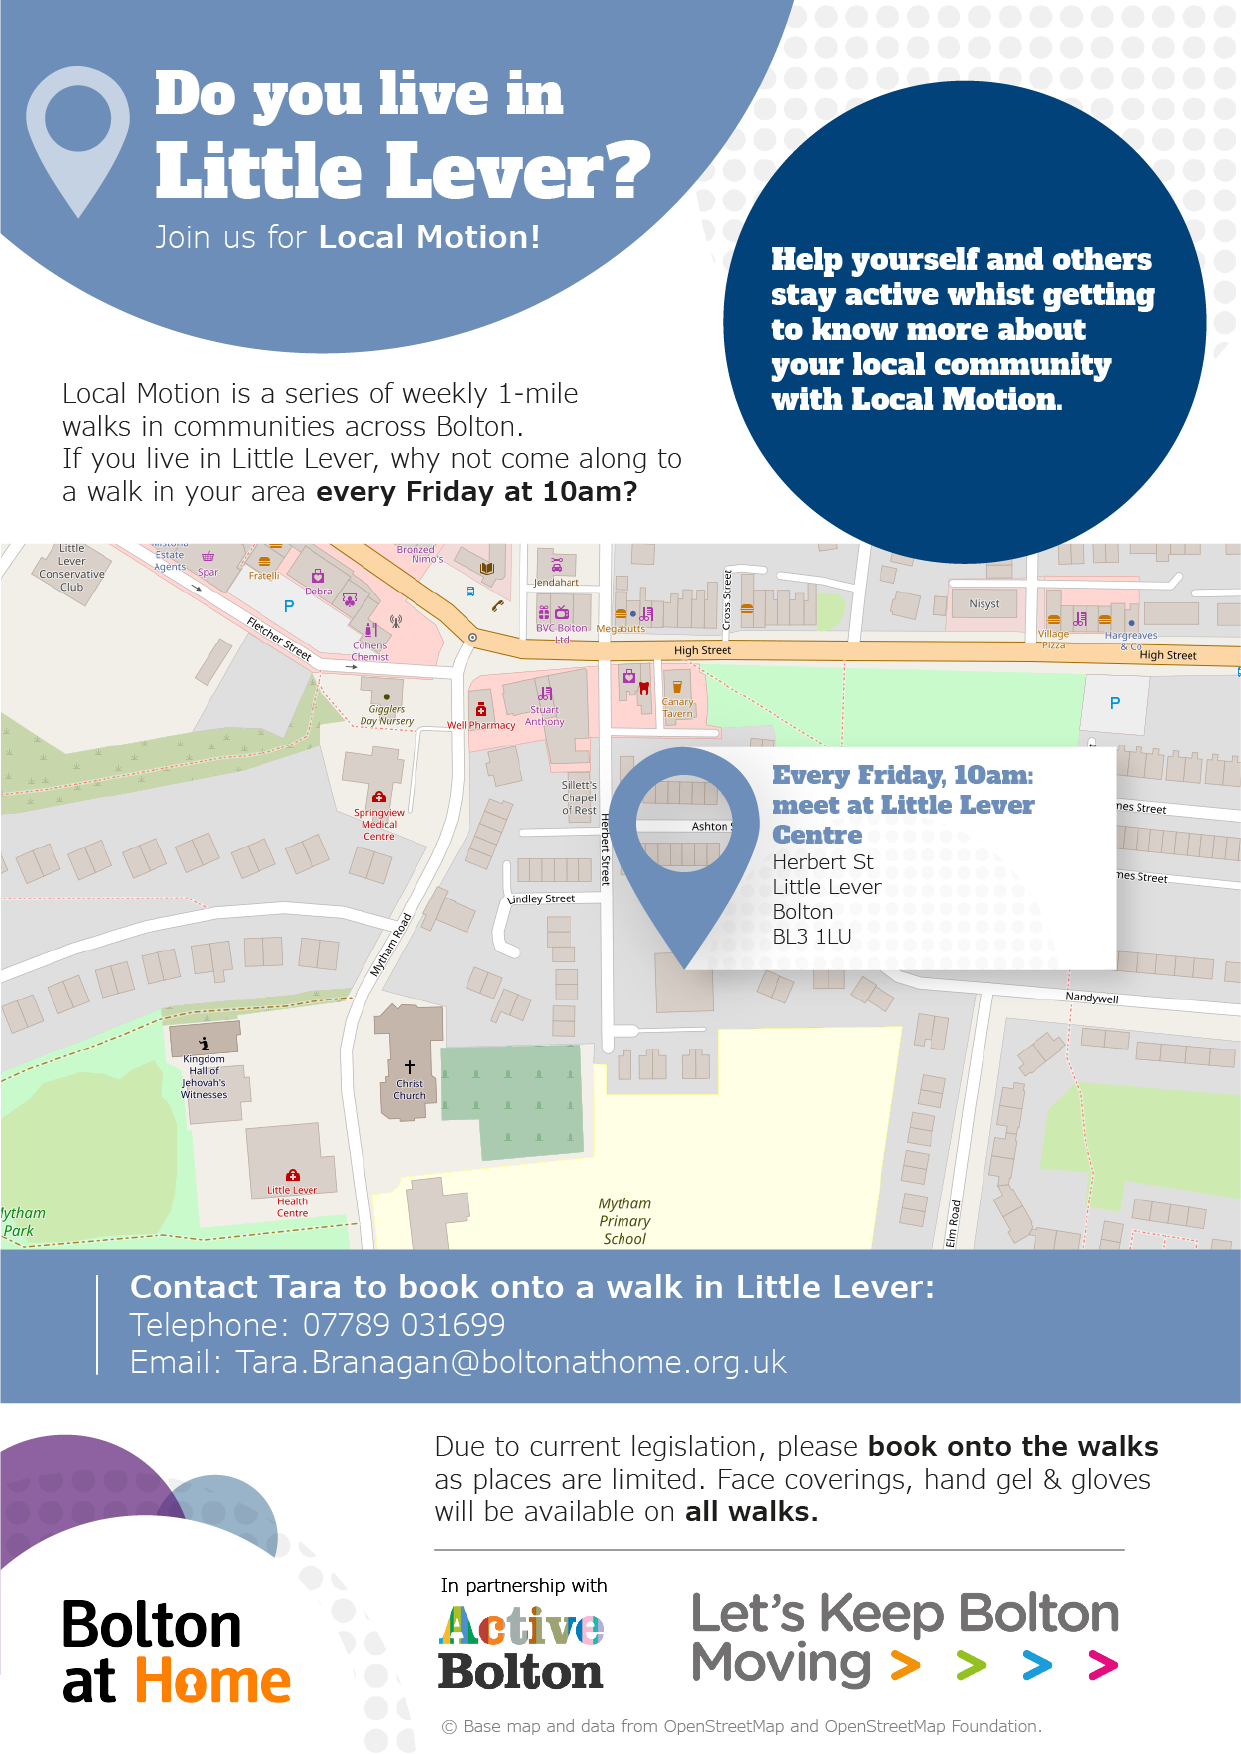 Poster displaying details of Local Motion walks in Little Lever. These details are available in text form using the table in the 'full Local Motion walks schedule below.